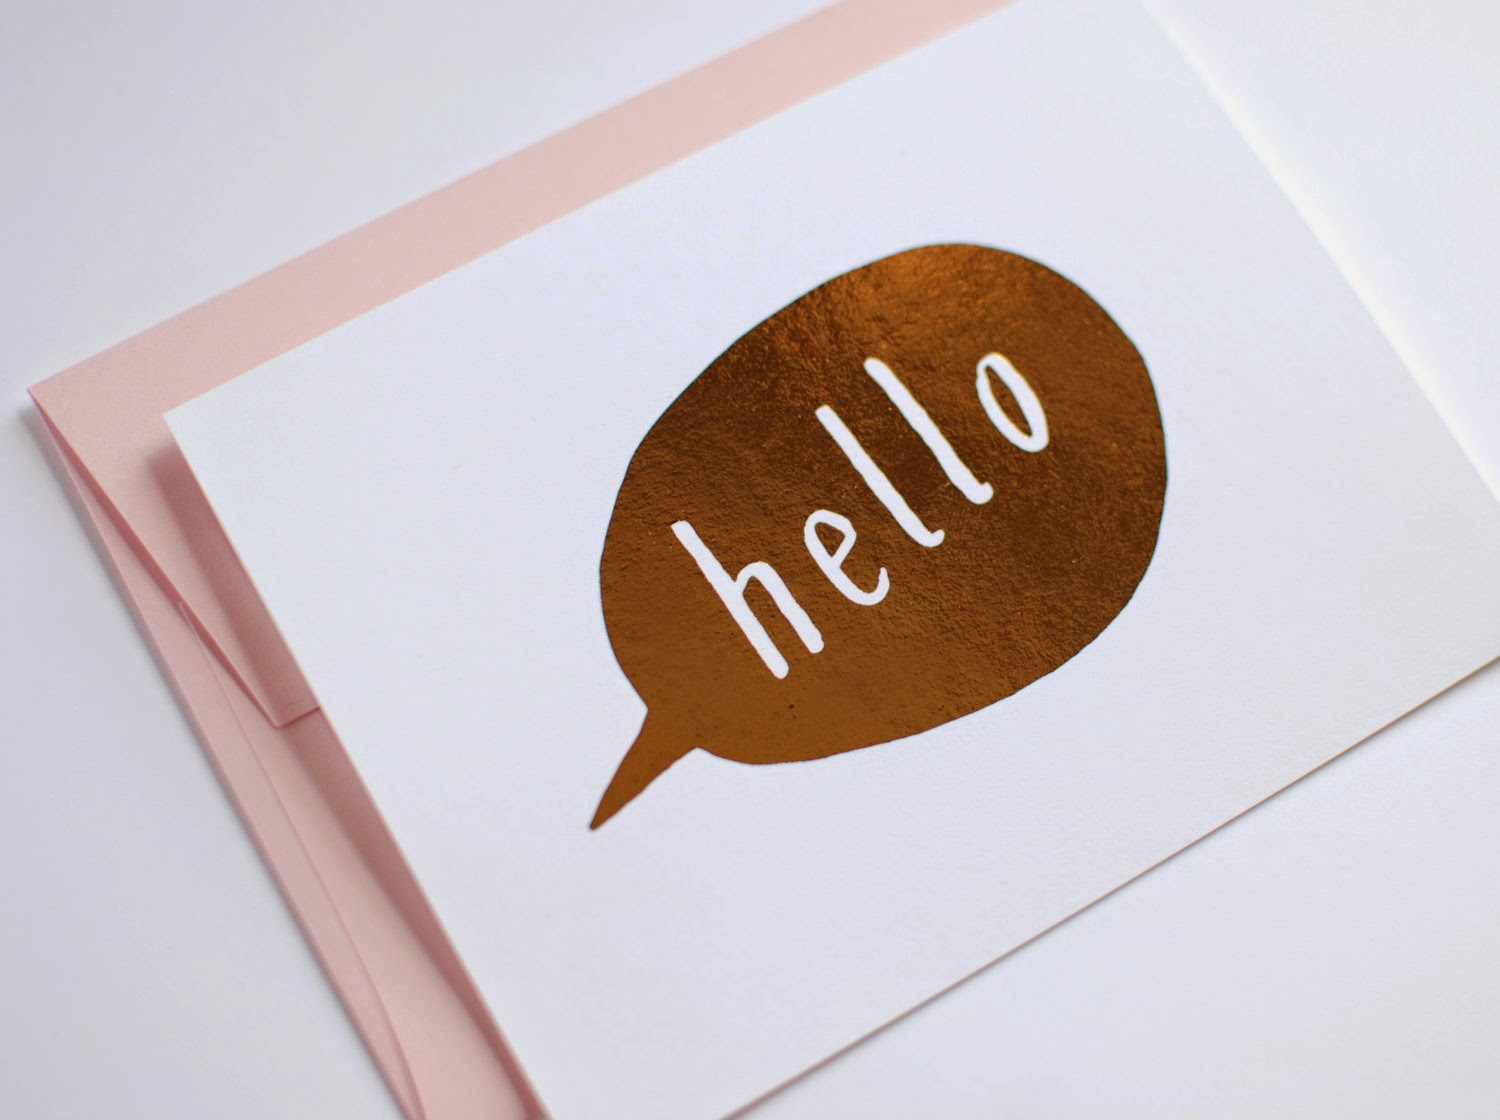 https://www.etsy.com/listing/189347281/hello-gold-foil-card-card-for-a-friend?ref=shop_home_active_12